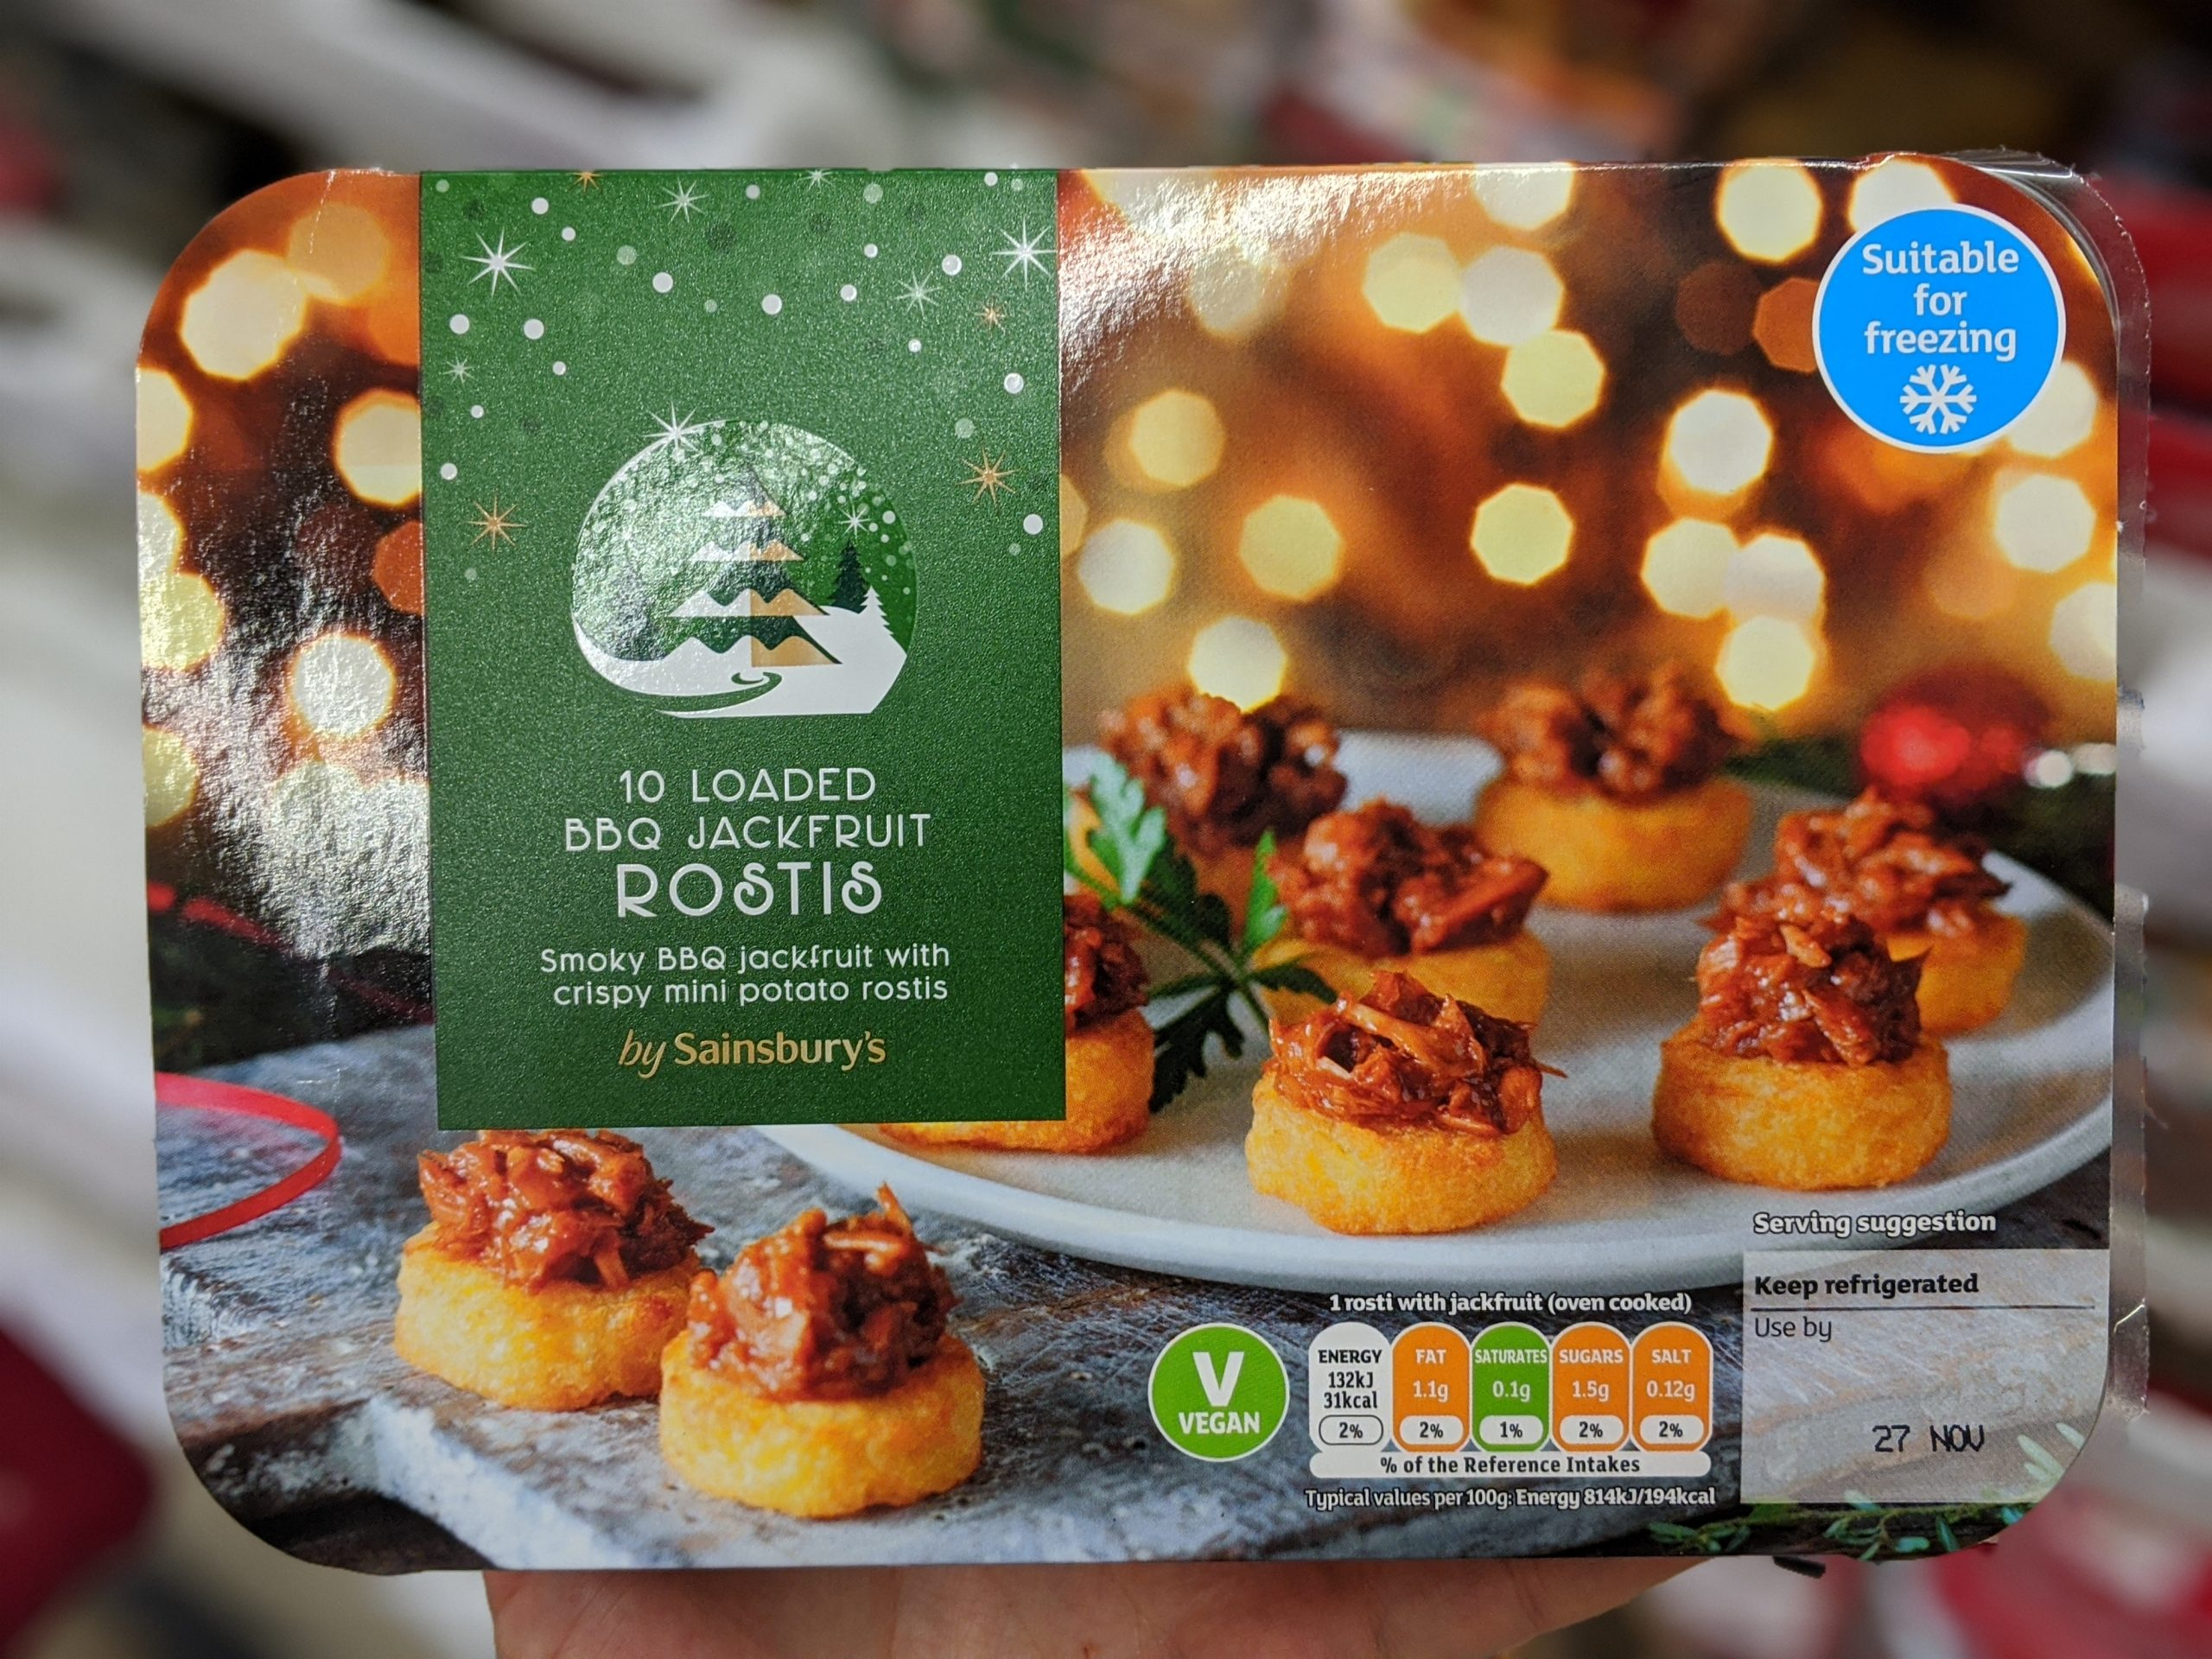 Gluten Free Festive Party Food Guide 2019 My Gluten Free Guide